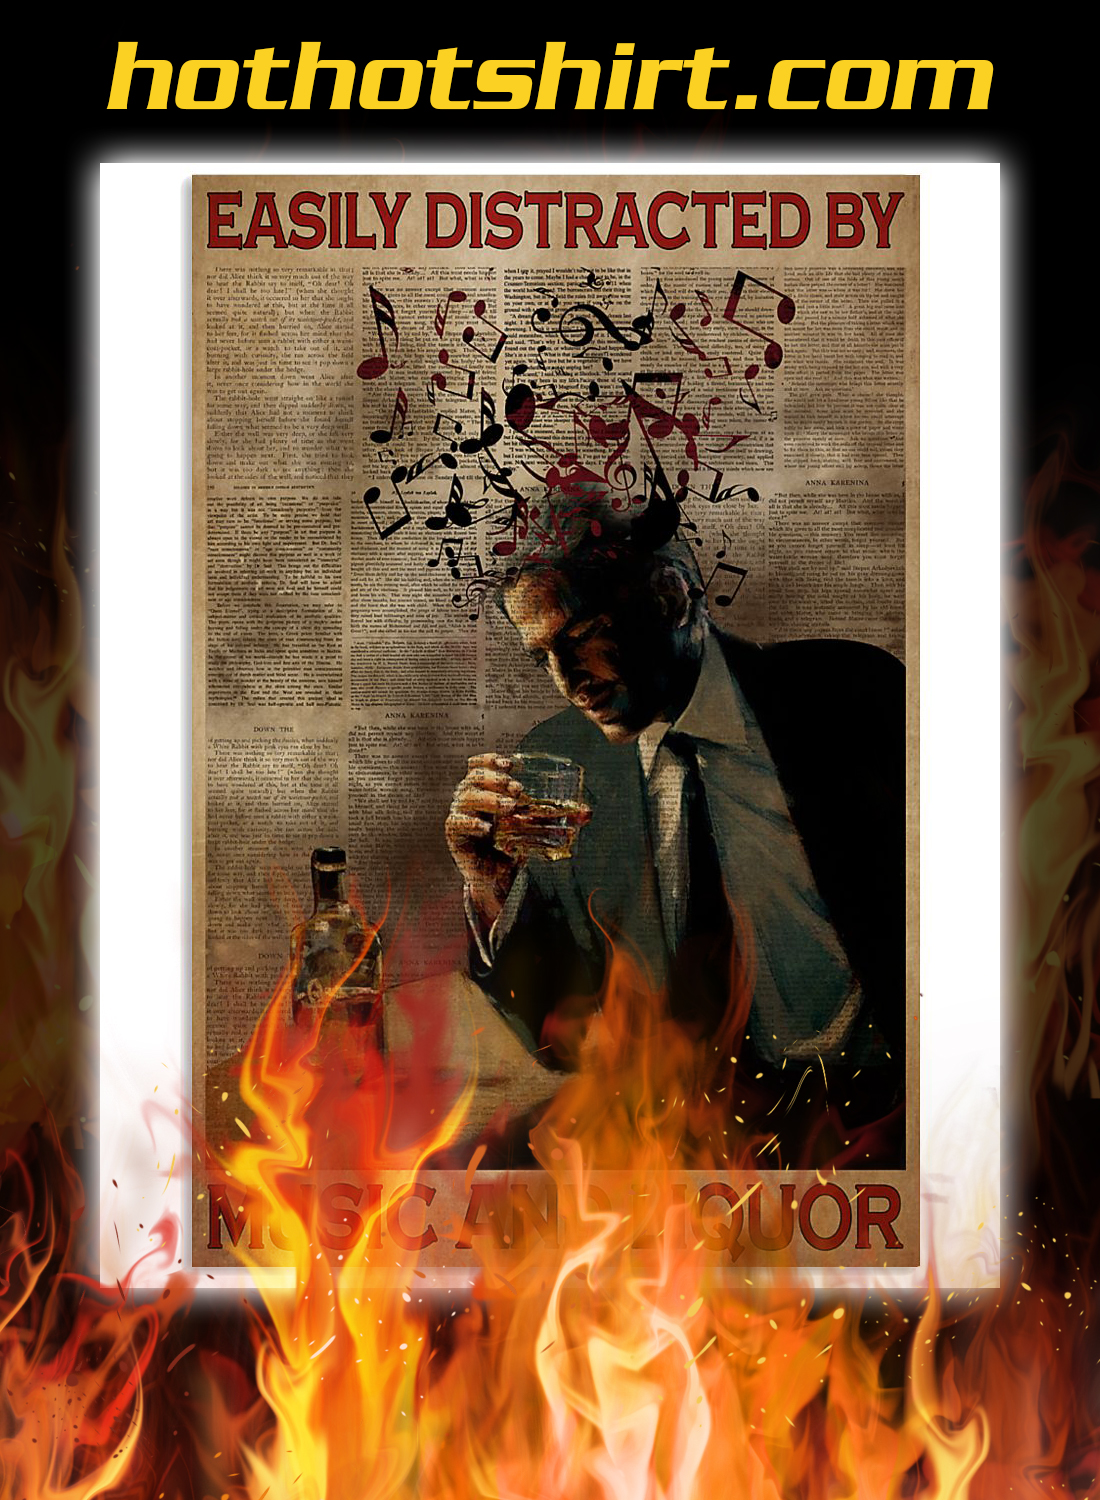 Man easily distracted by music and liquor poster 3